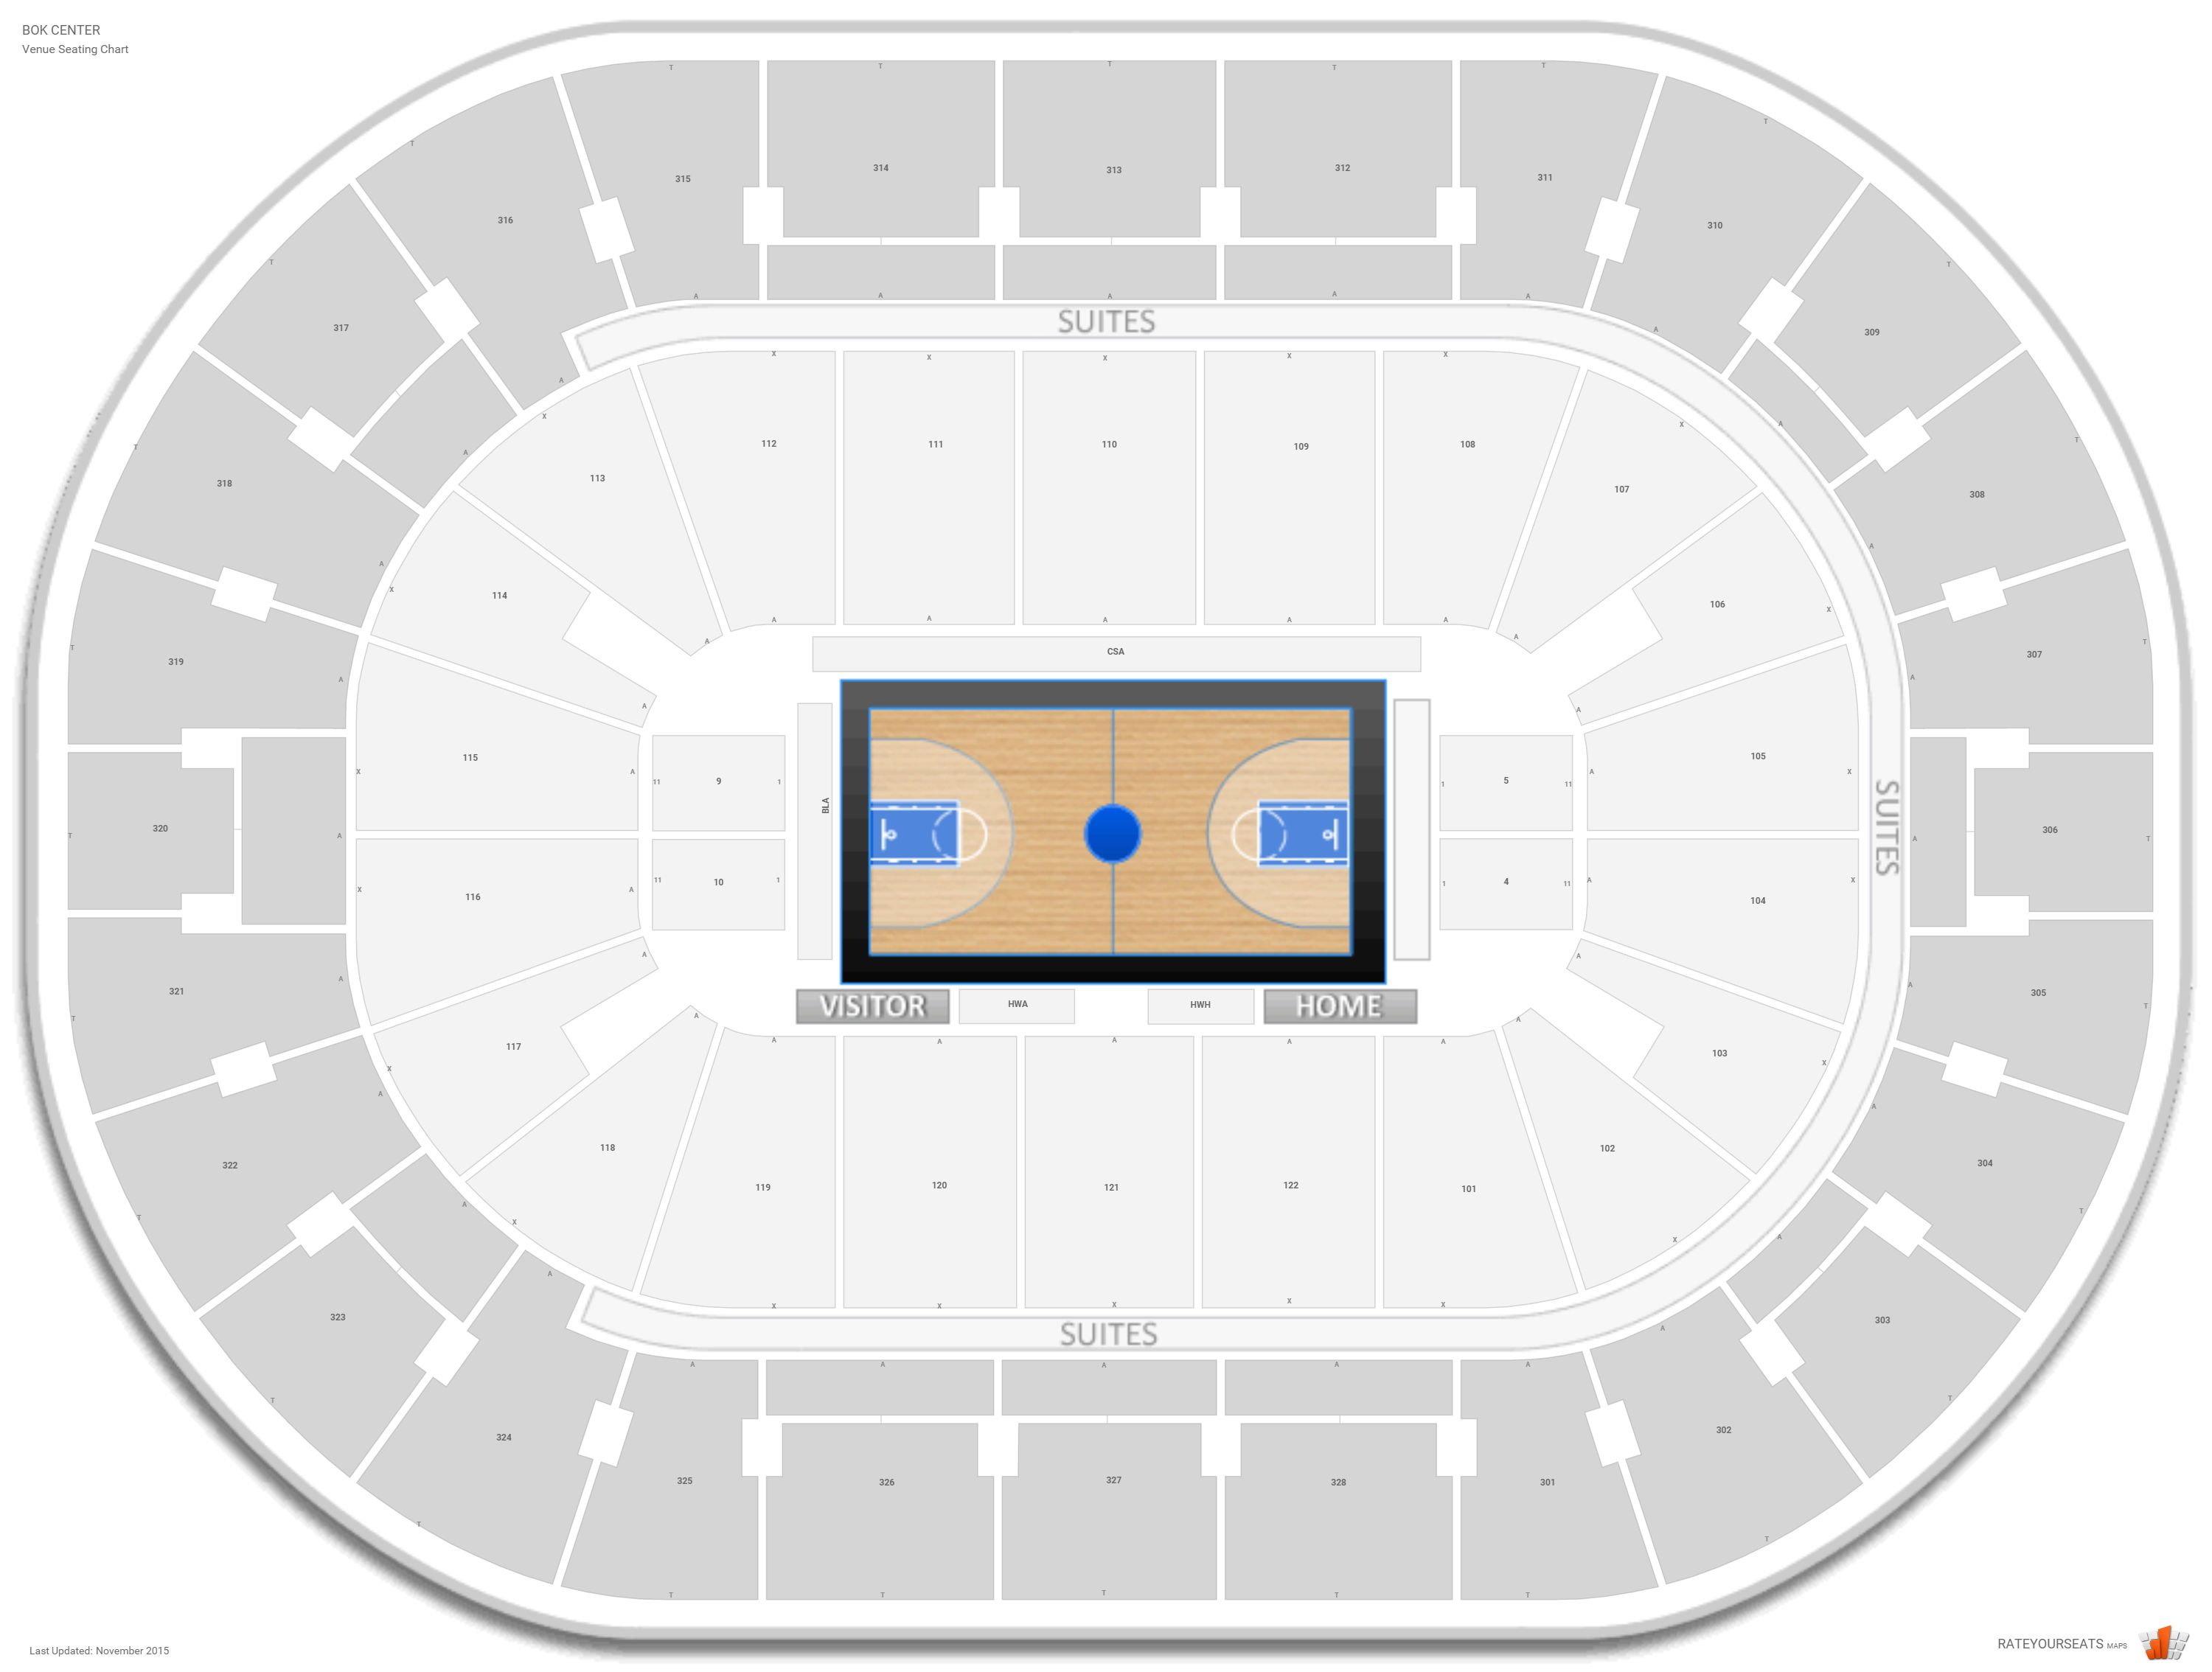 BOK Center Basketball Seating Guide - RateYourSeats.com